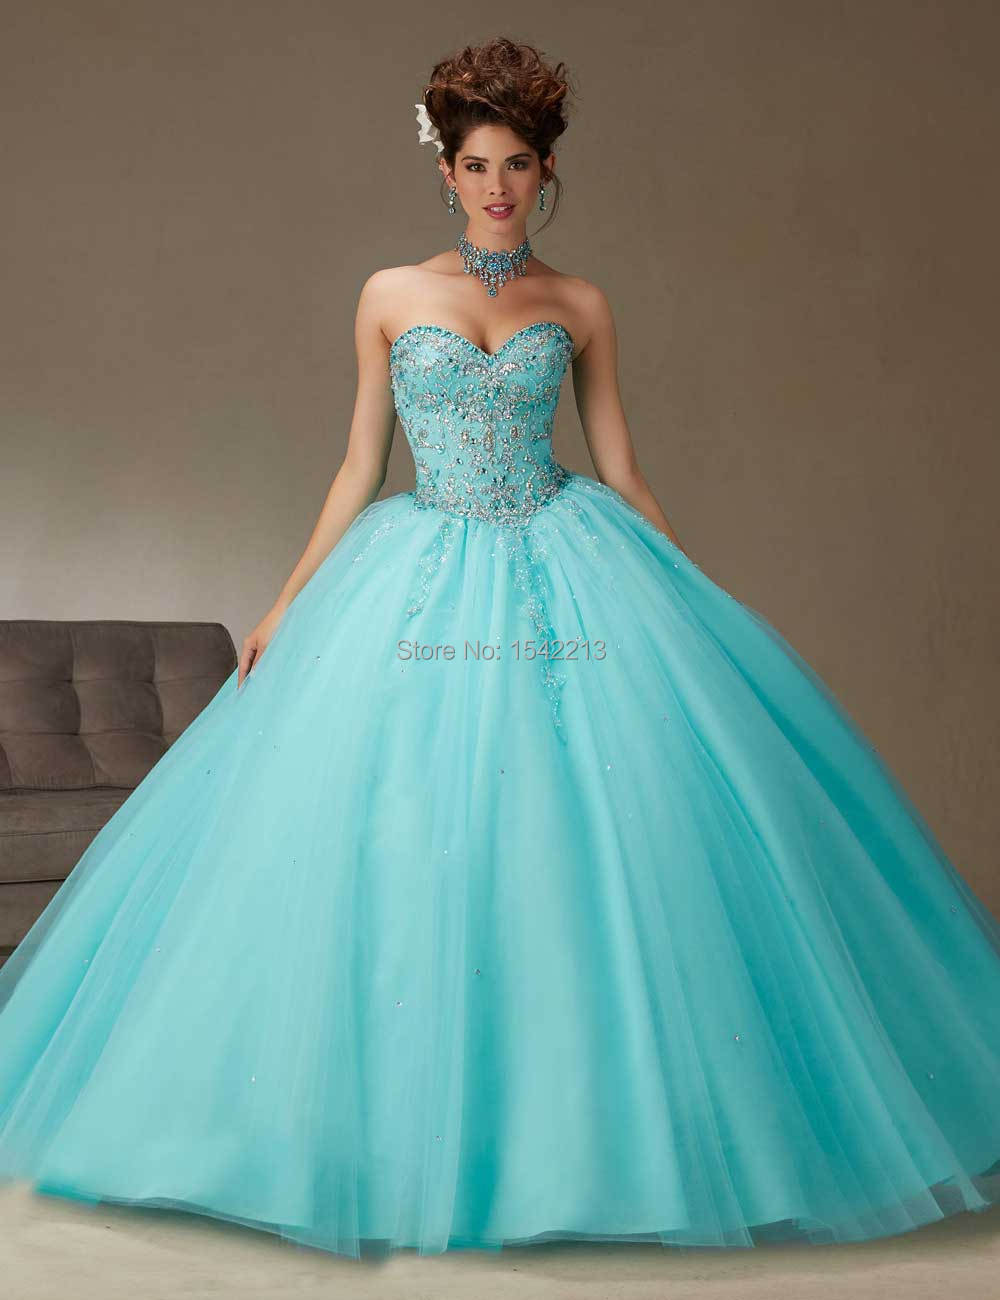 2017 High Quality Beaded Quinceanera Dress Pink Ice Blue Ball Gown ...